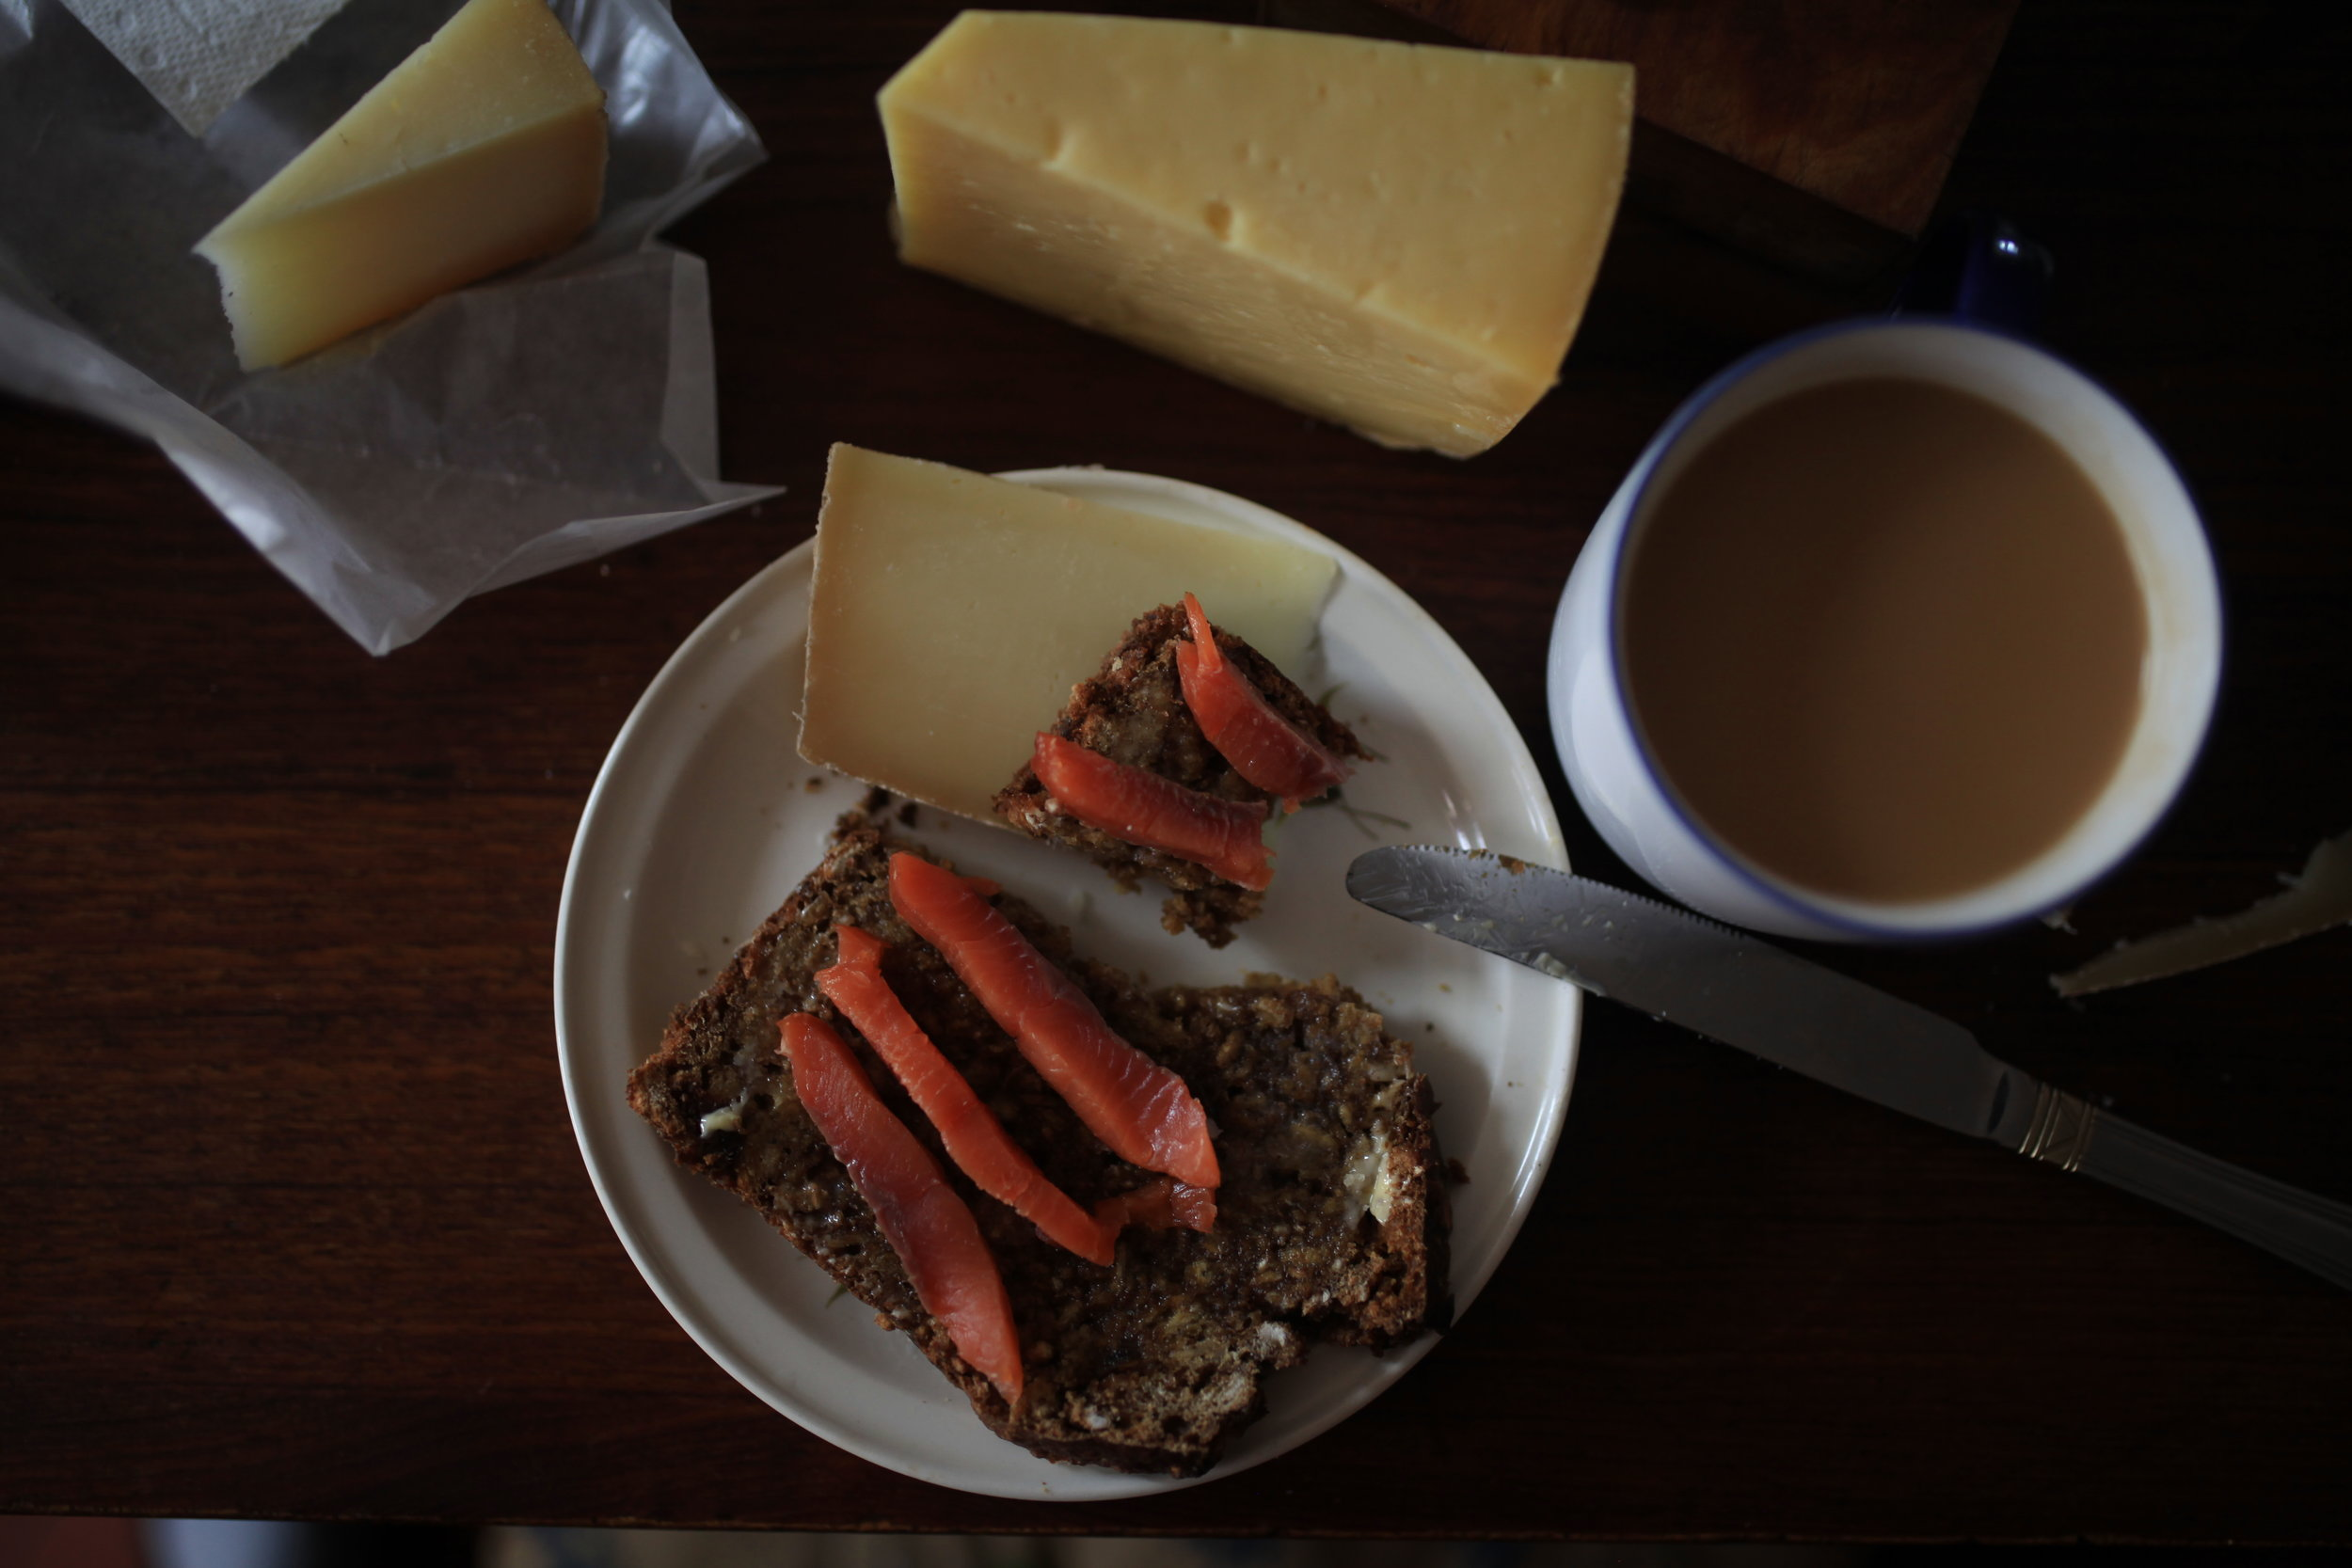 The best way to enjoy the wild salmon: Soda bread, good salted butter and a cup of tea.